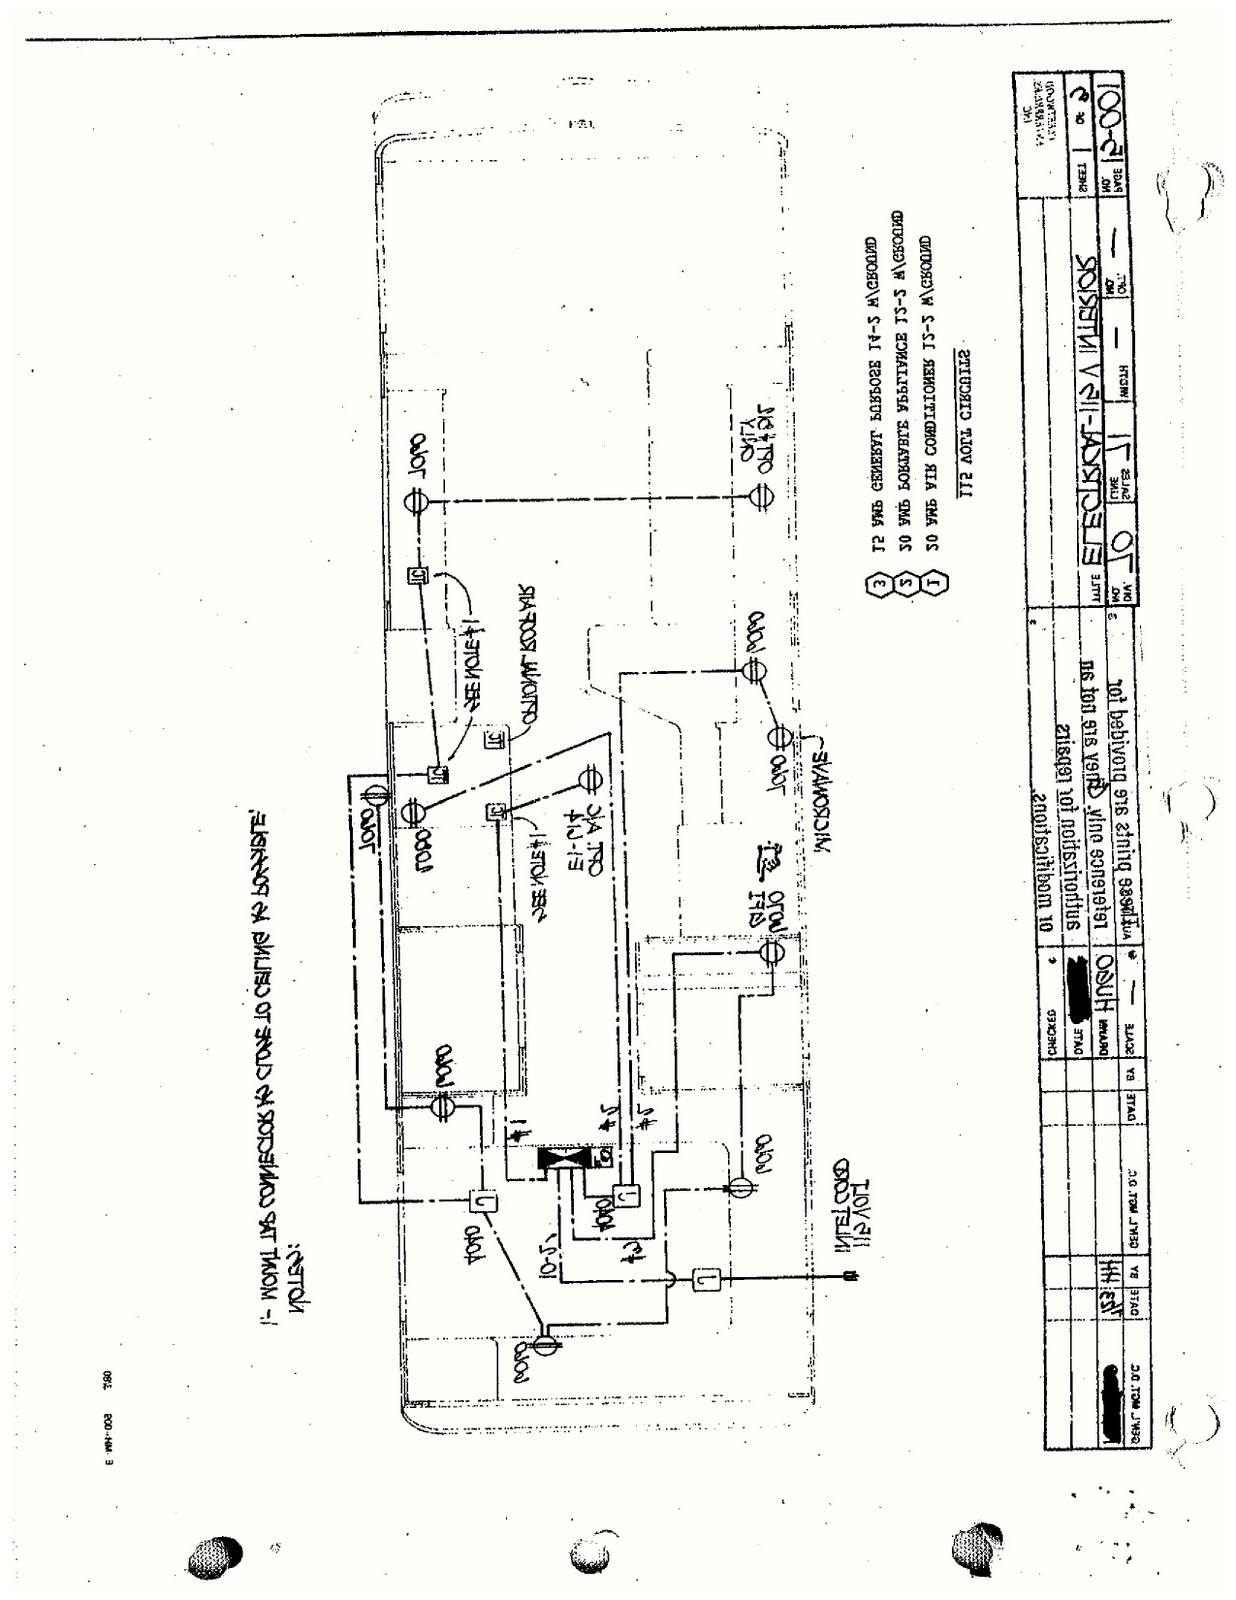 1976 fleetwood prowler rv wiring diagram